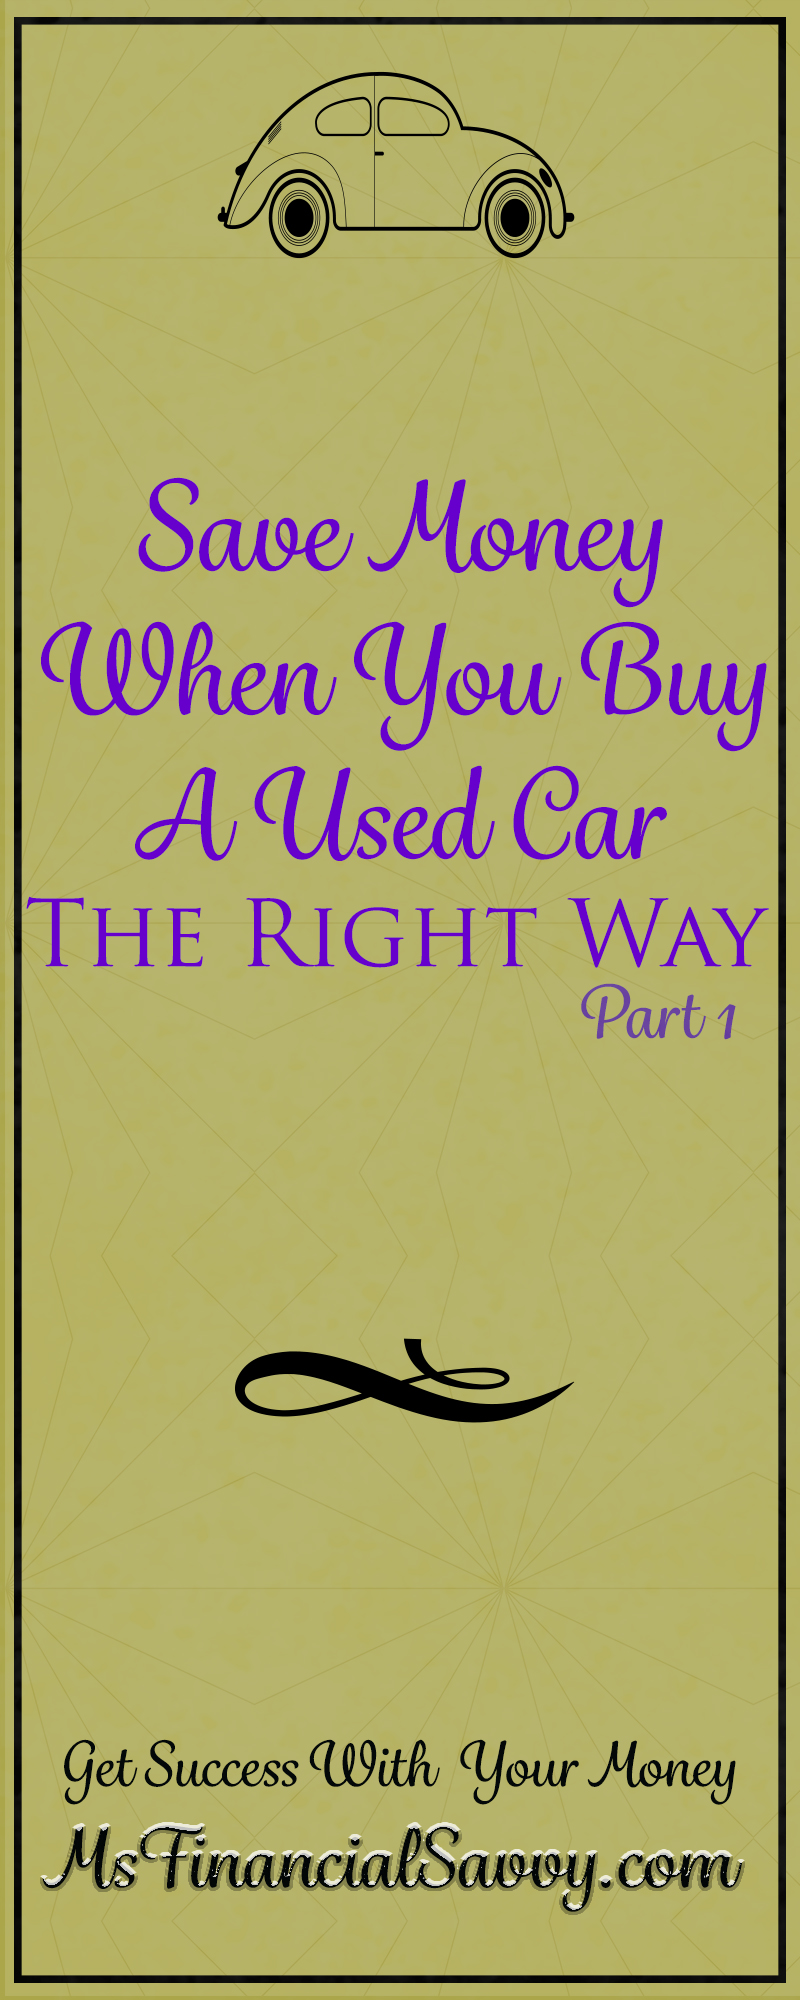 Save Money When You Buy a Used Car The Right Way Part 1